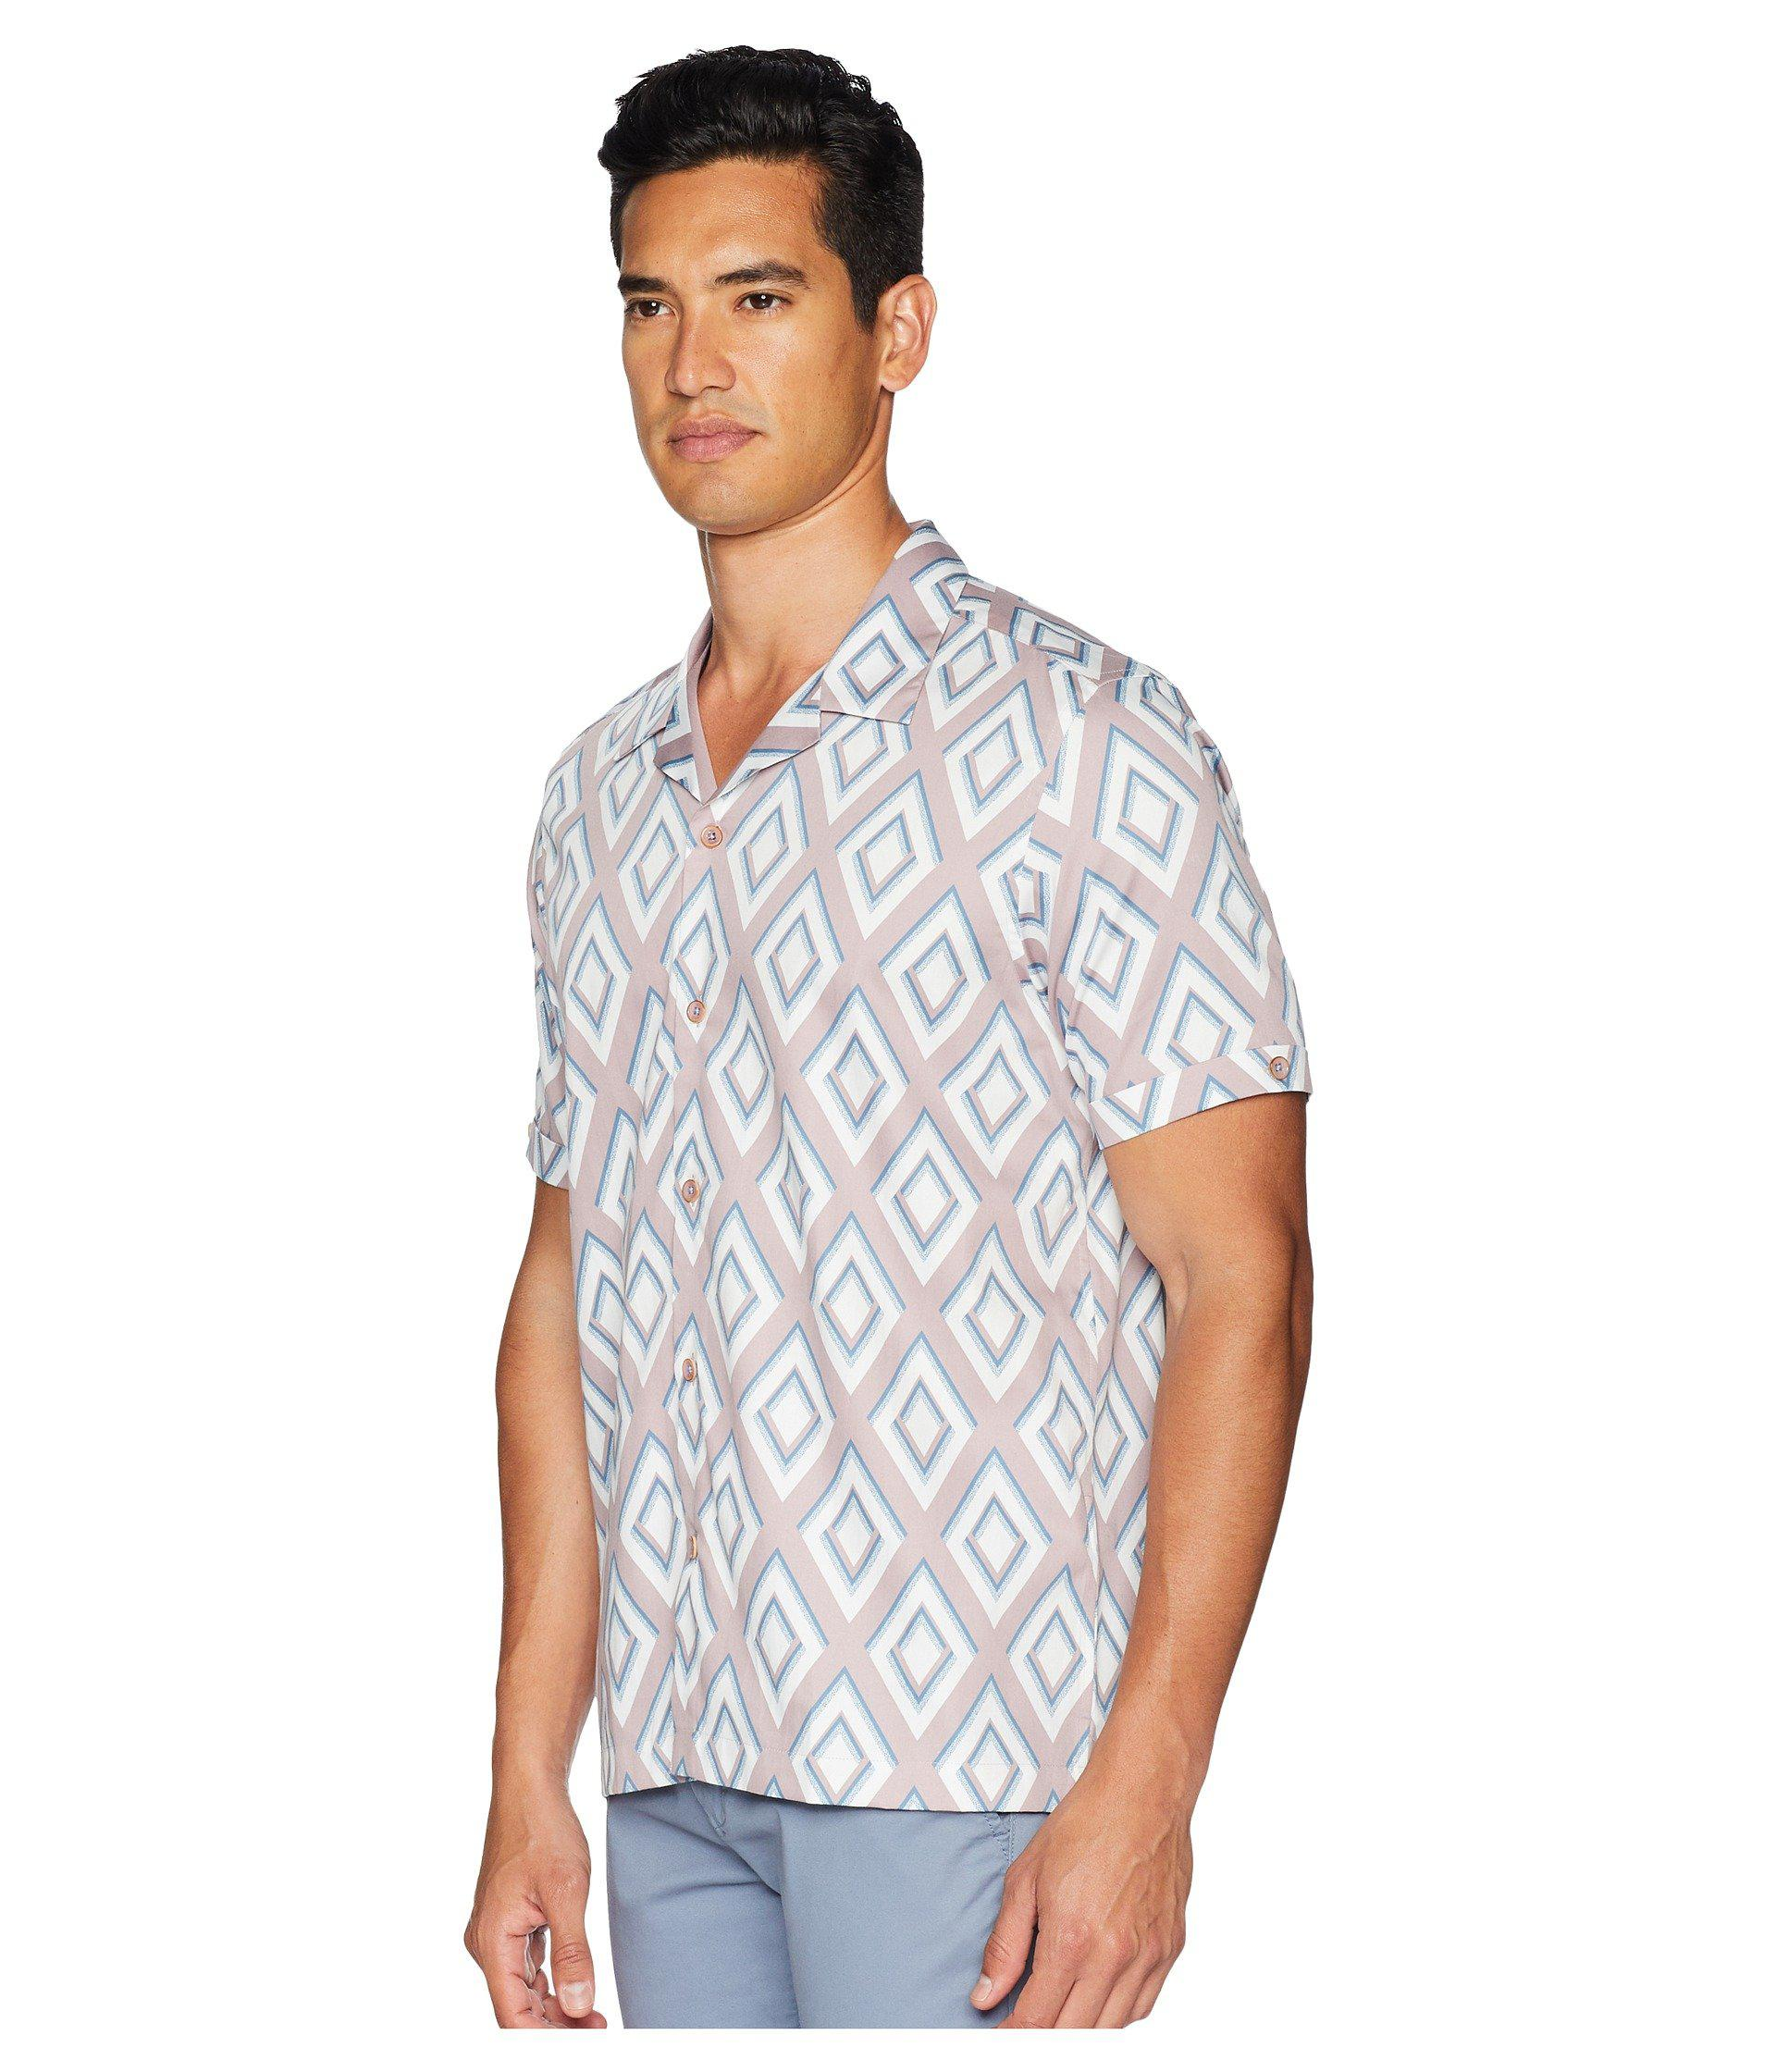 0b959a92a Lyst - Ted Baker Bloo Short Sleeve Large Diamond Print Shirt in Pink for Men  - Save 26%